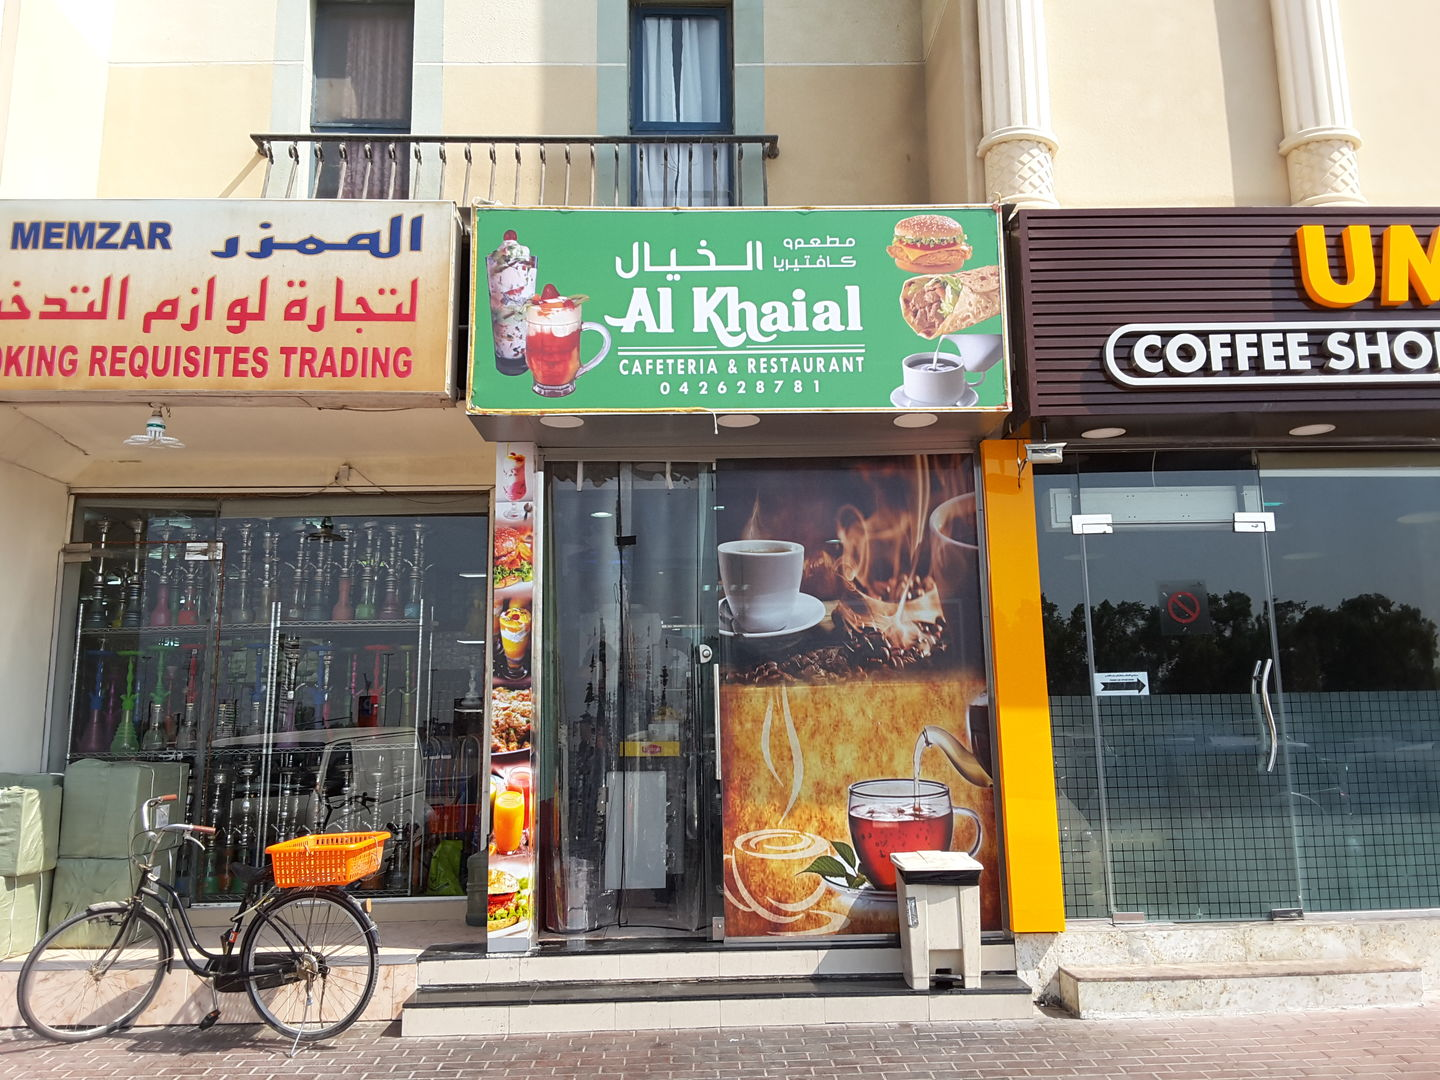 HiDubai-business-al-khaial-restaurant-food-beverage-cafeterias-hor-al-anz-east-dubai-2